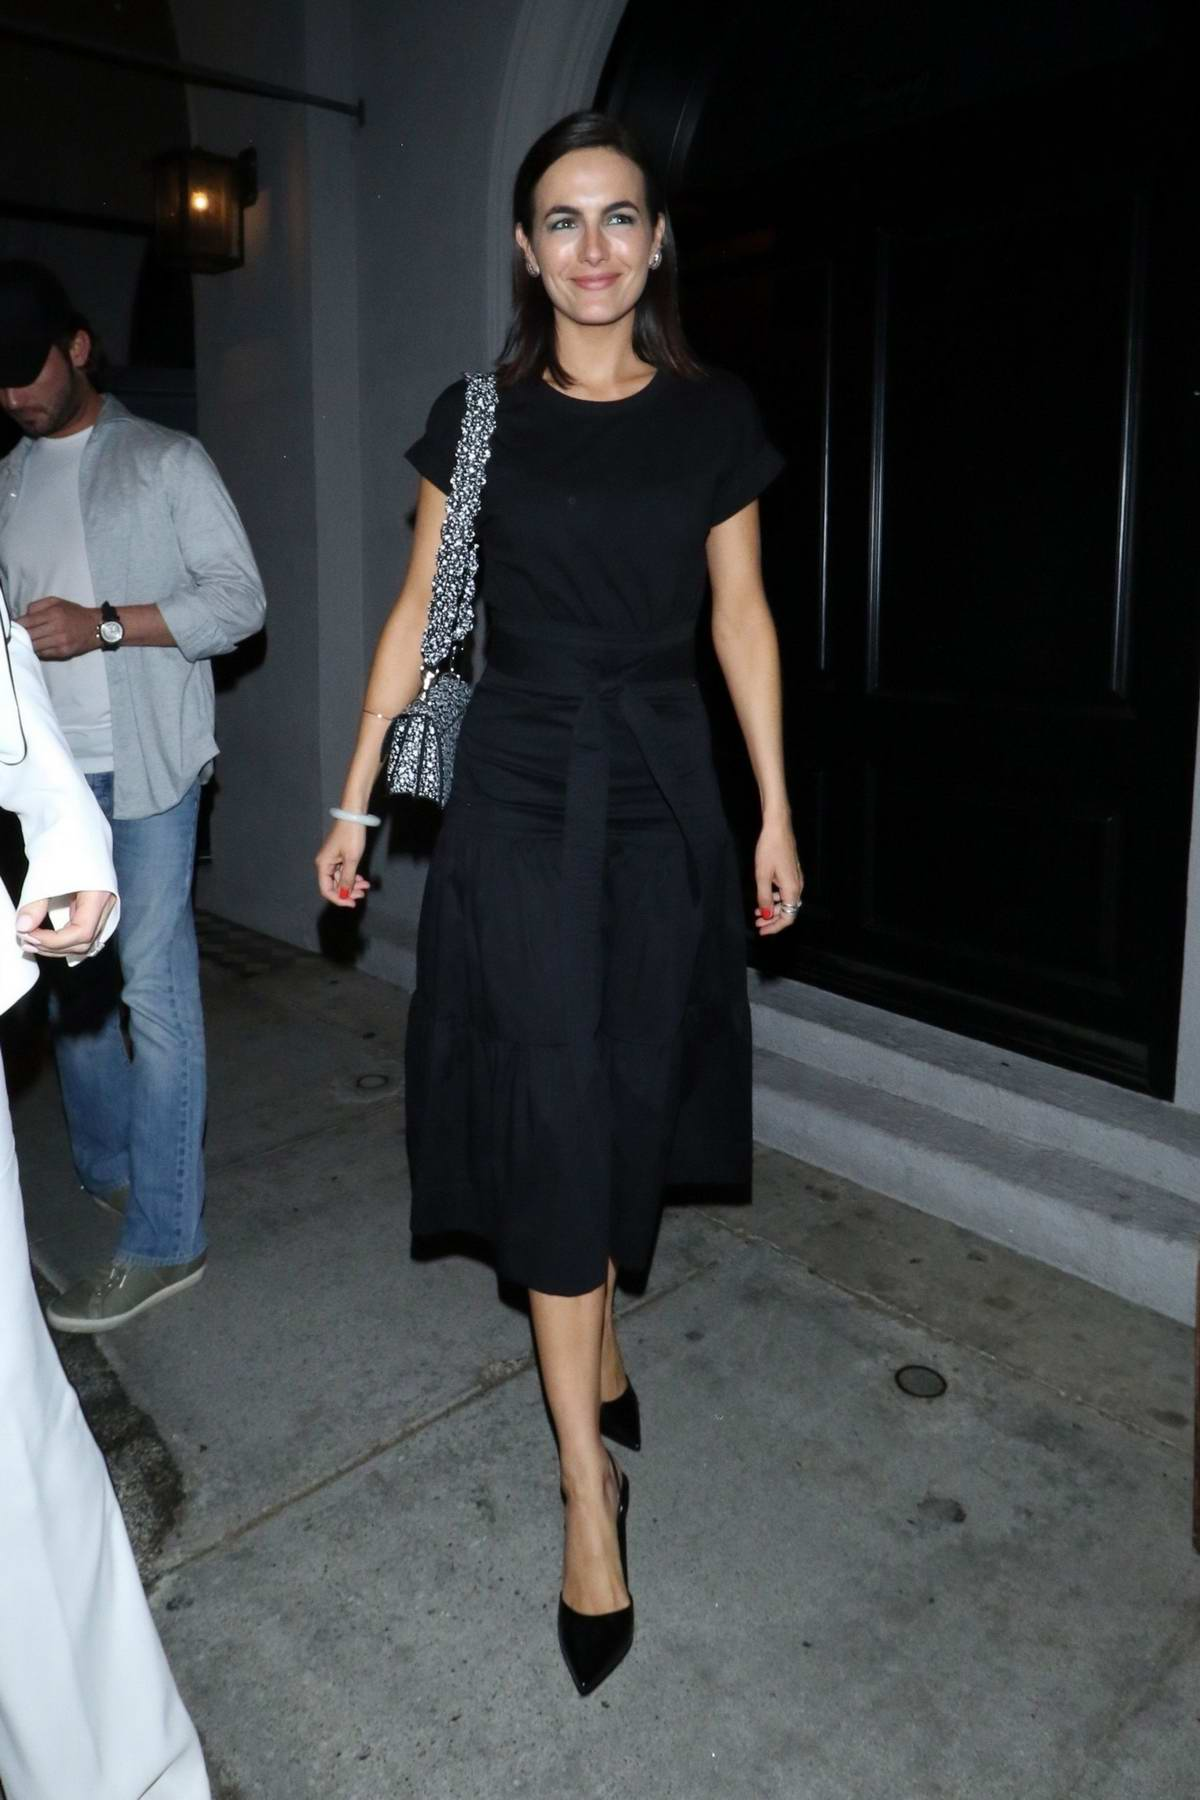 Camilla Belle is all smiles as she leaves after dinner with friends at Craig's restaurant in West Hollywood, Los Angeles